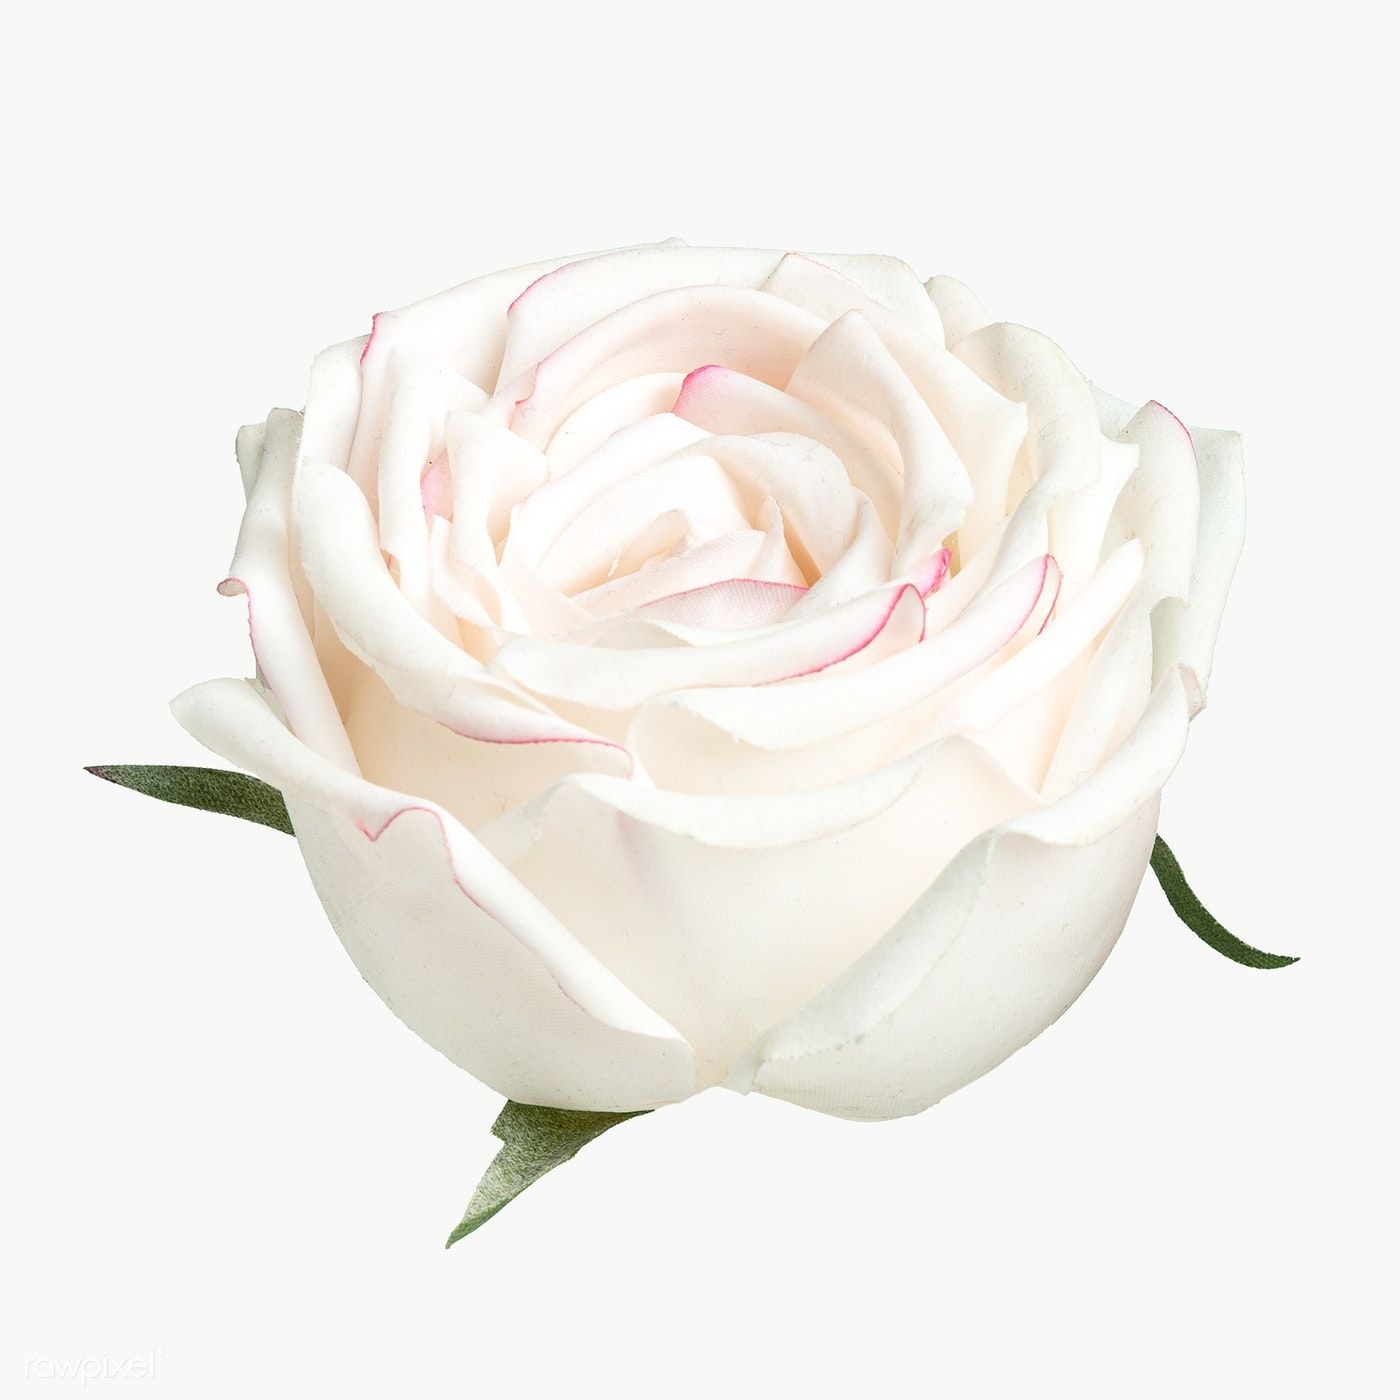 White Rose Flower Transparent Png Free Image By Rawpixel Com Teddy Rawpixel White Rose Flower White Roses Background Yellow Rose Flower